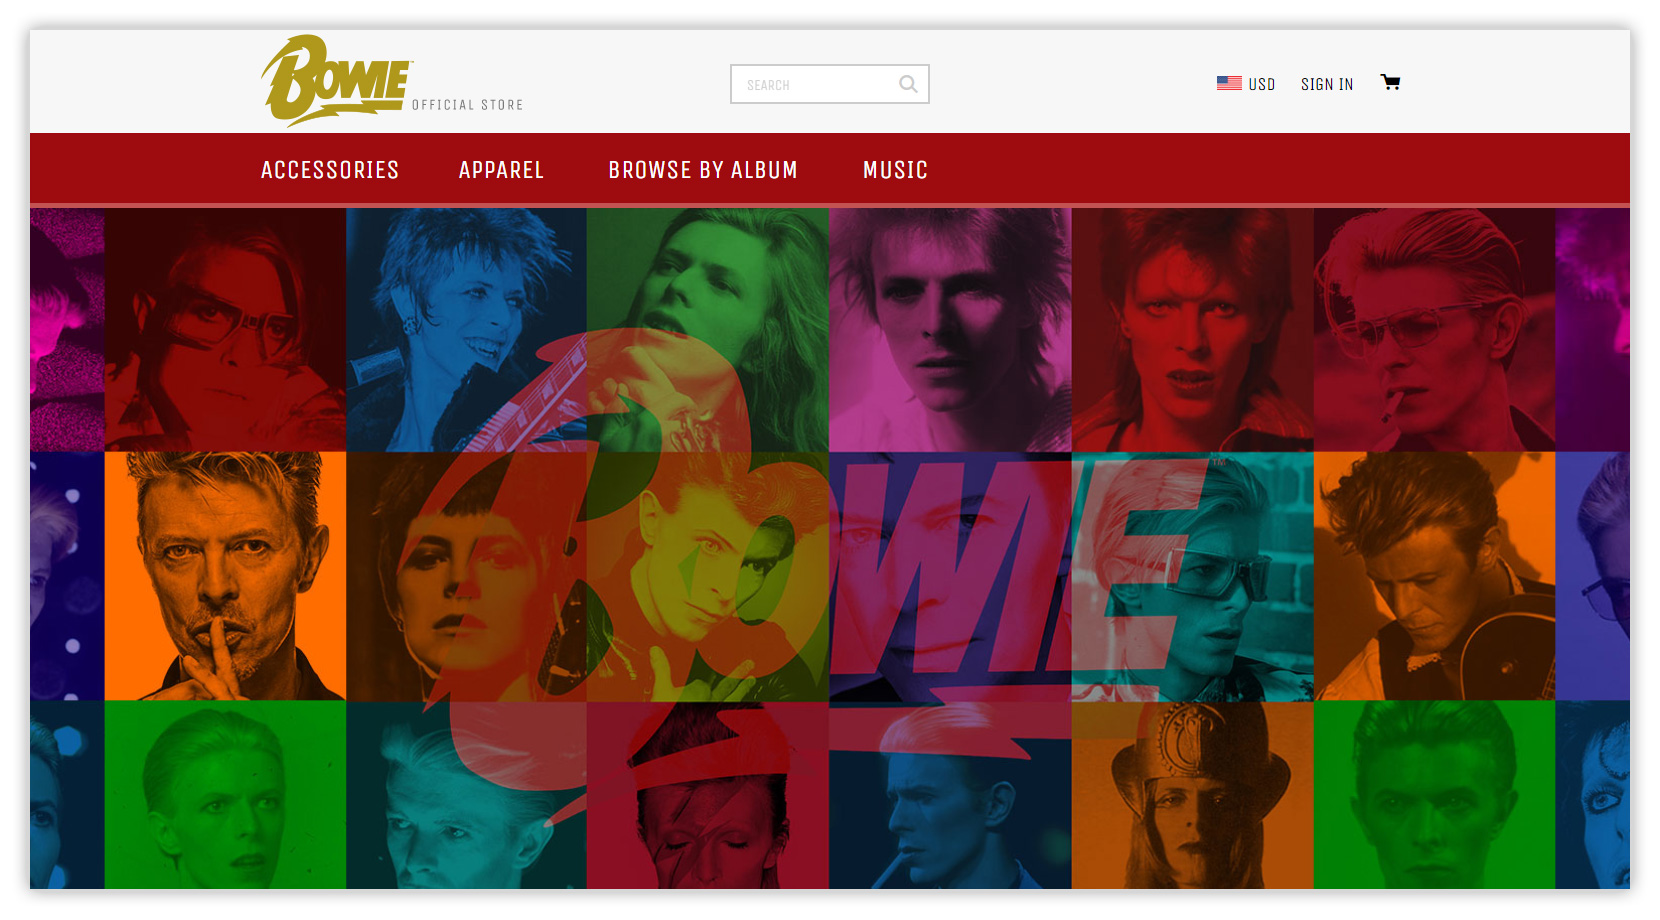 David Bowie Official U.S. Store